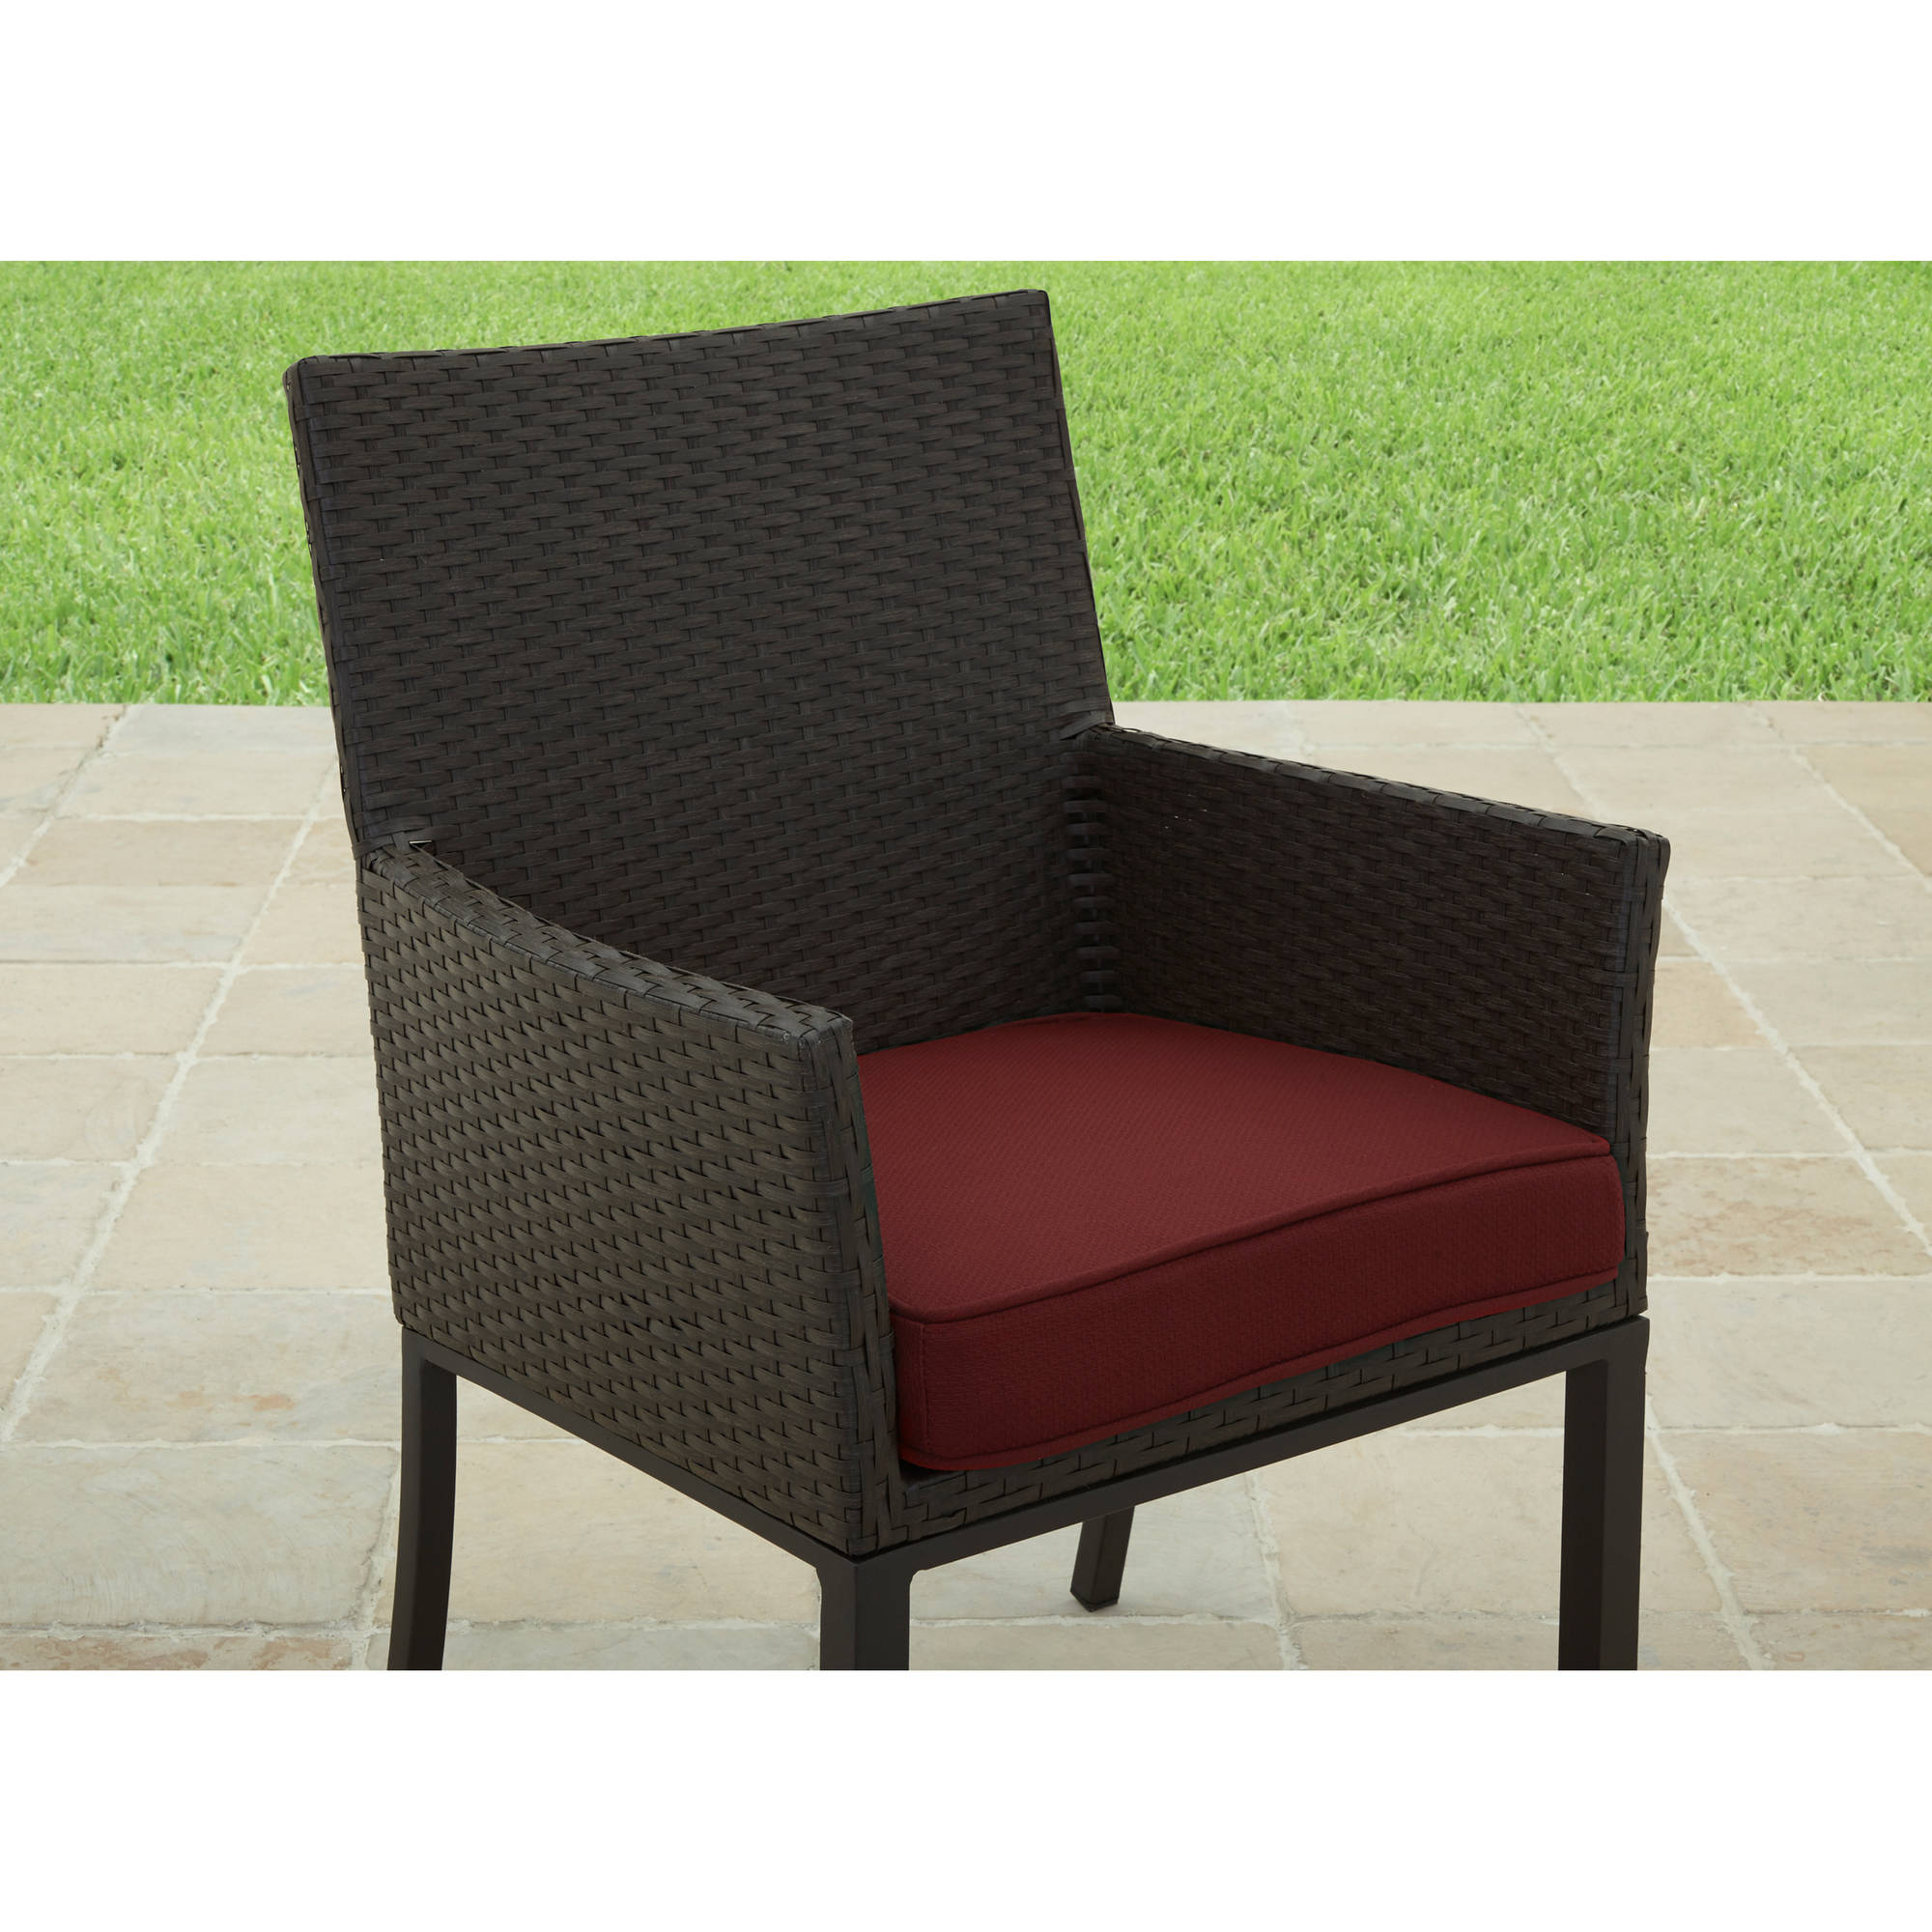 at home chairs chair stand test for seniors better homes and gardens rush valley outdoor dining set of 6 walmart com